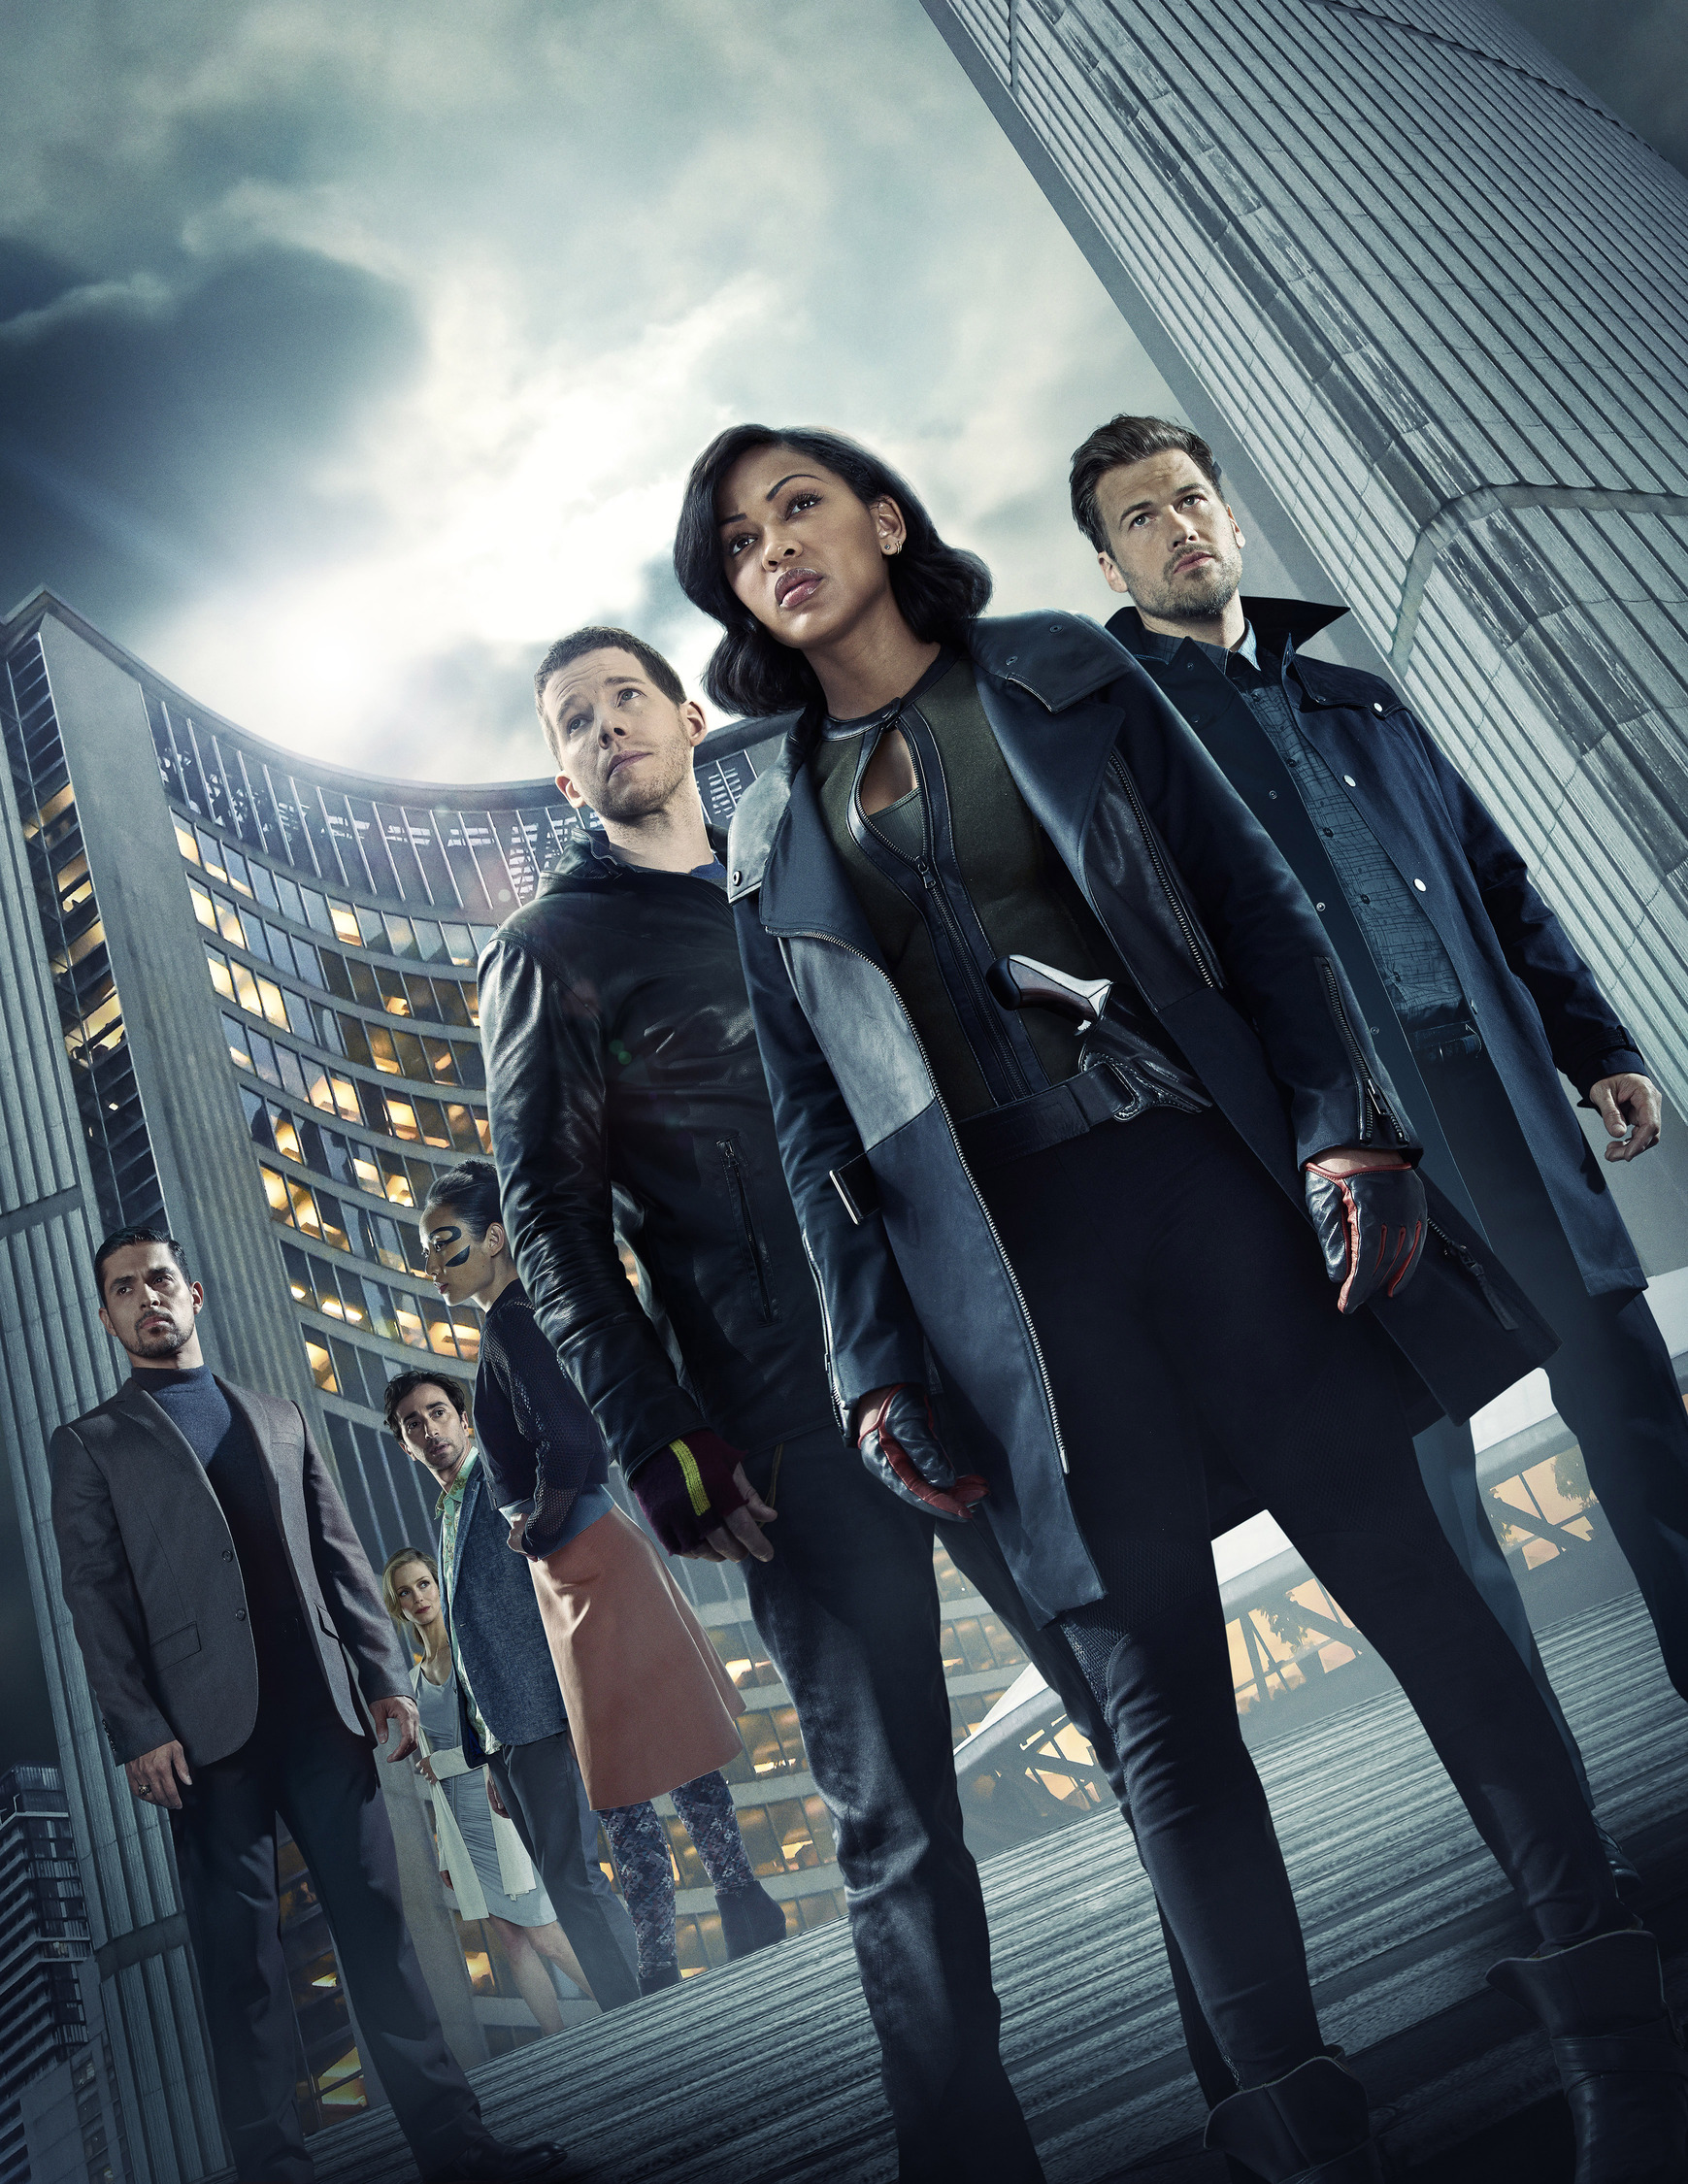 MINORITY REPORT: L-R: Wilmer Valderrama as Will Blake, Laura Regan as Agatha, Daniel London as Wally, Li Jun Li as Akeela, Stark Sands as Dash, Megan Good as Det. Lara Vega and Nick Zano as Arthur. . CR: Michael Becker / FOX. © 2015 FOX Broadcasting.